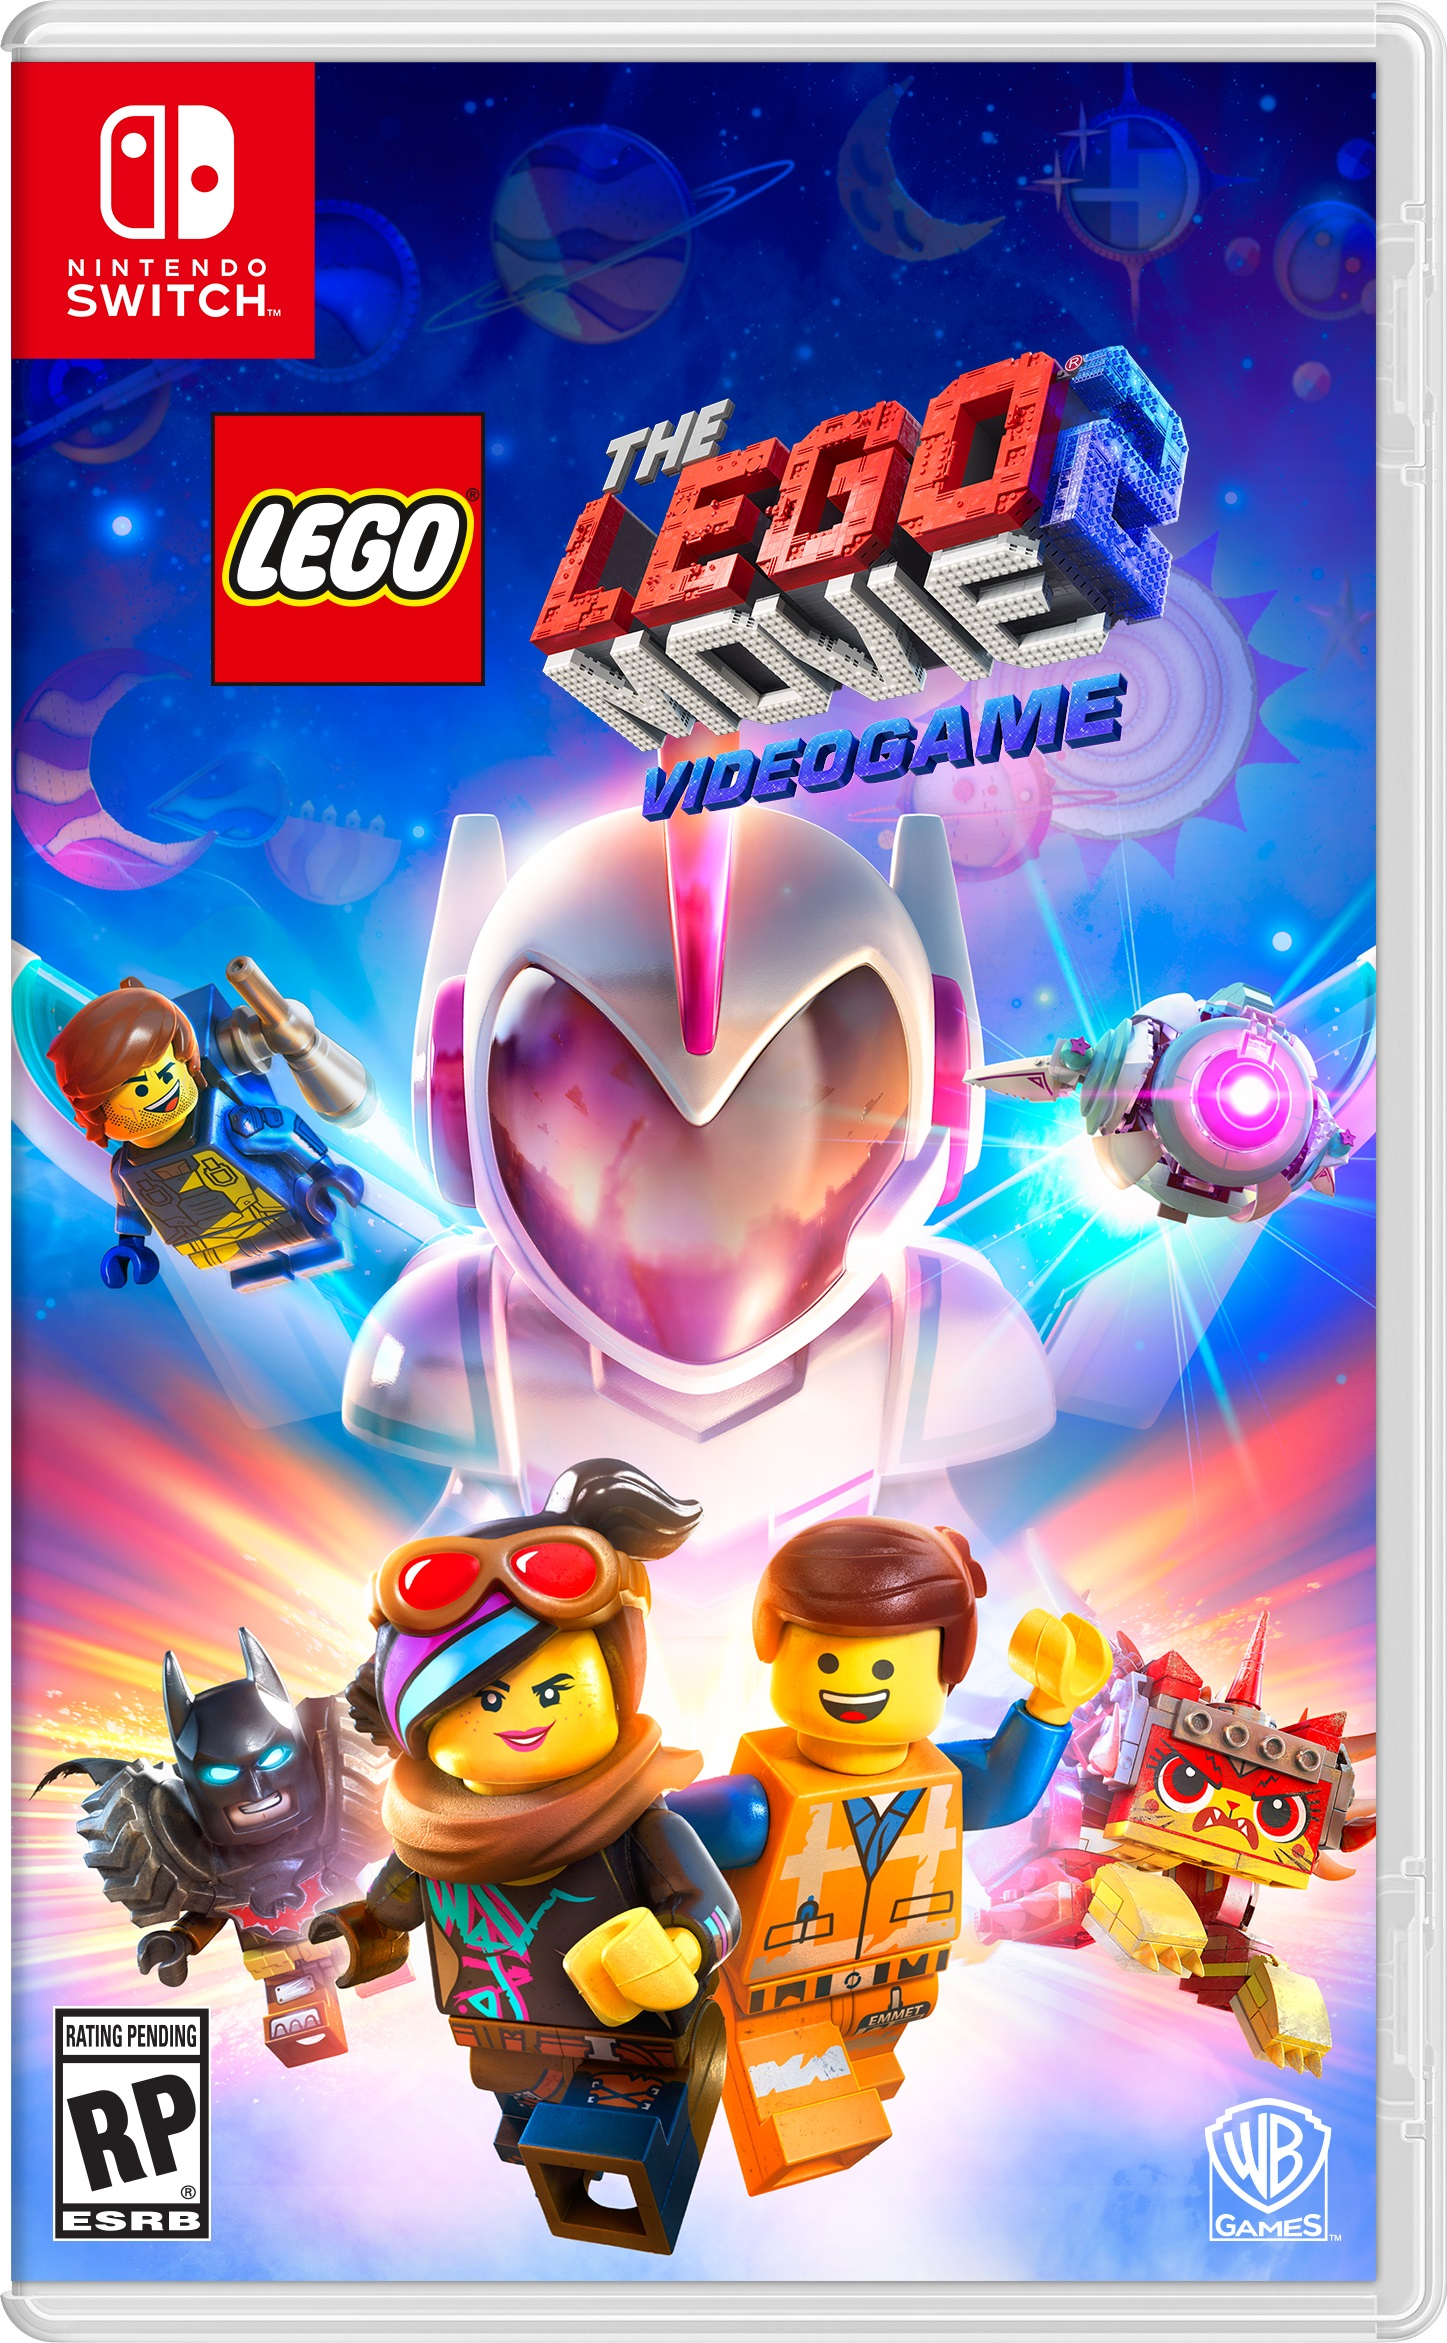 The LEGO Movie 2 Videogame announced for the Nintendo ...